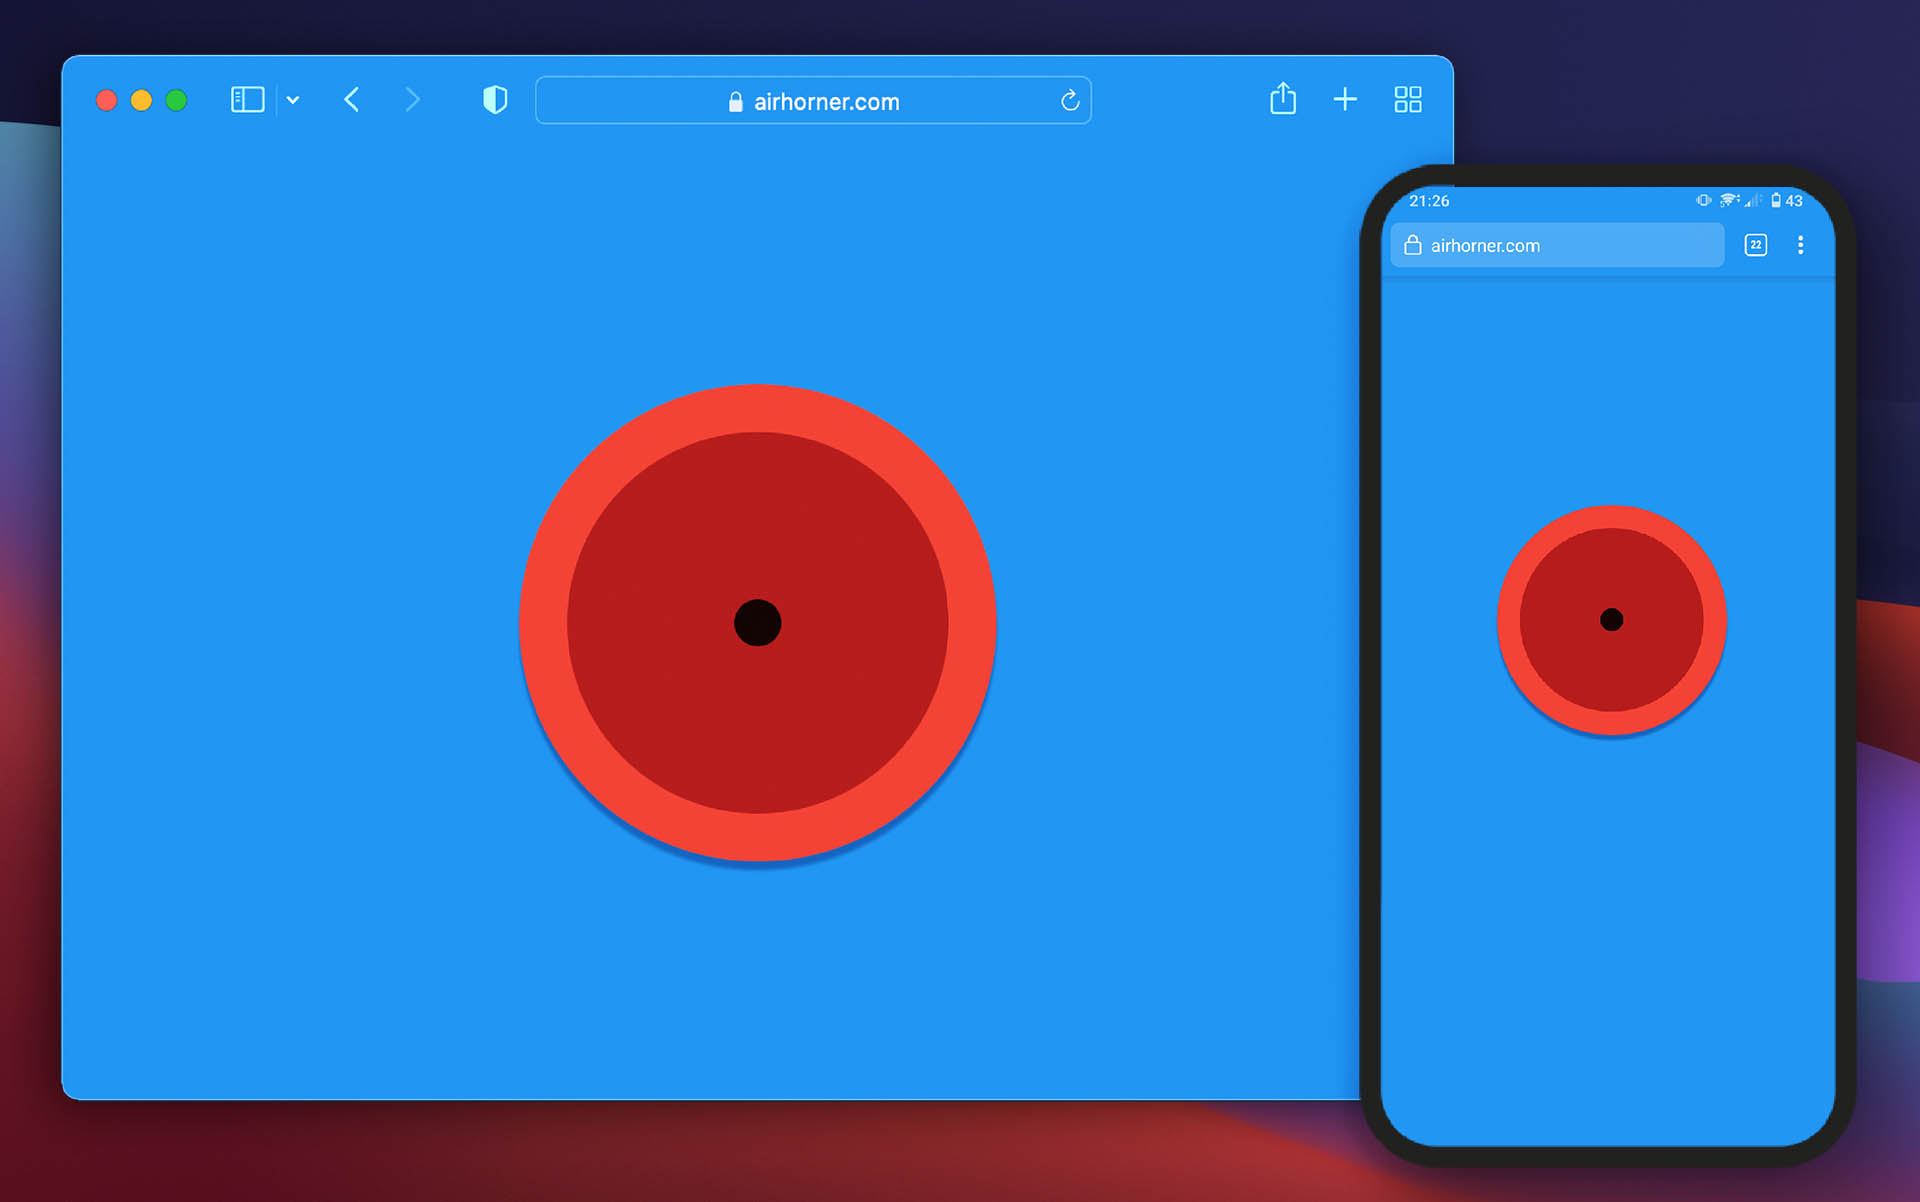 A screenshot of airhorner.com, a website featuring a large red circular graphic on a uniformly blue background. The screenshot is presented on the redesigned Safari Tech Preview and in an Android Smartphone. Both browsers feature a blue-tinted UI, seamlessly integrating the website into the browser.